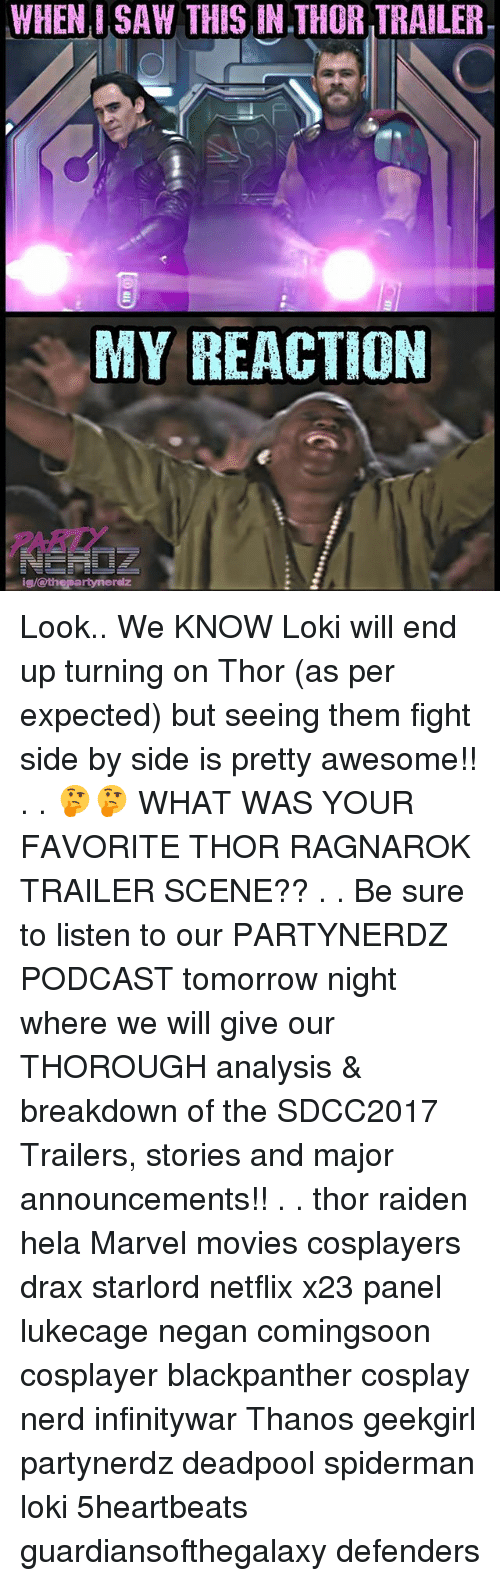 negan: WHEN, I SAW THIS IN THOR TRAILER.  MY REACTION  ARITY  ig/othepartynerdz Look.. We KNOW Loki will end up turning on Thor (as per expected) but seeing them fight side by side is pretty awesome!! . . 🤔🤔 WHAT WAS YOUR FAVORITE THOR RAGNAROK TRAILER SCENE?? . . Be sure to listen to our PARTYNERDZ PODCAST tomorrow night where we will give our THOROUGH analysis & breakdown of the SDCC2017 Trailers, stories and major announcements!! . . thor raiden hela Marvel movies cosplayers drax starlord netflix x23 panel lukecage negan comingsoon cosplayer blackpanther cosplay nerd infinitywar Thanos geekgirl partynerdz deadpool spiderman loki 5heartbeats guardiansofthegalaxy defenders